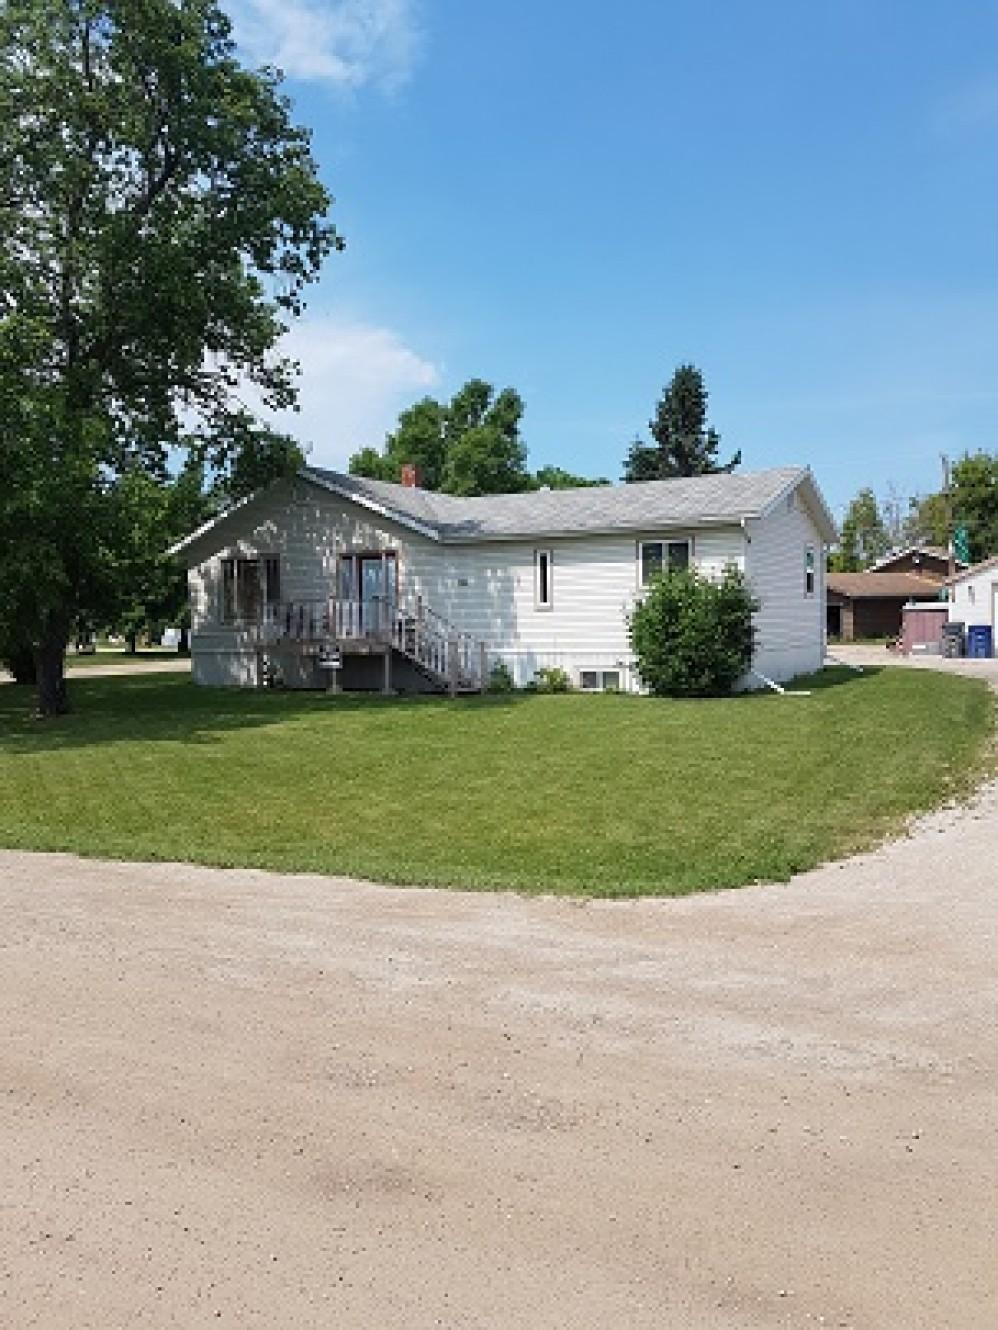 90 Railway Avenue - Lot 01 Block 08